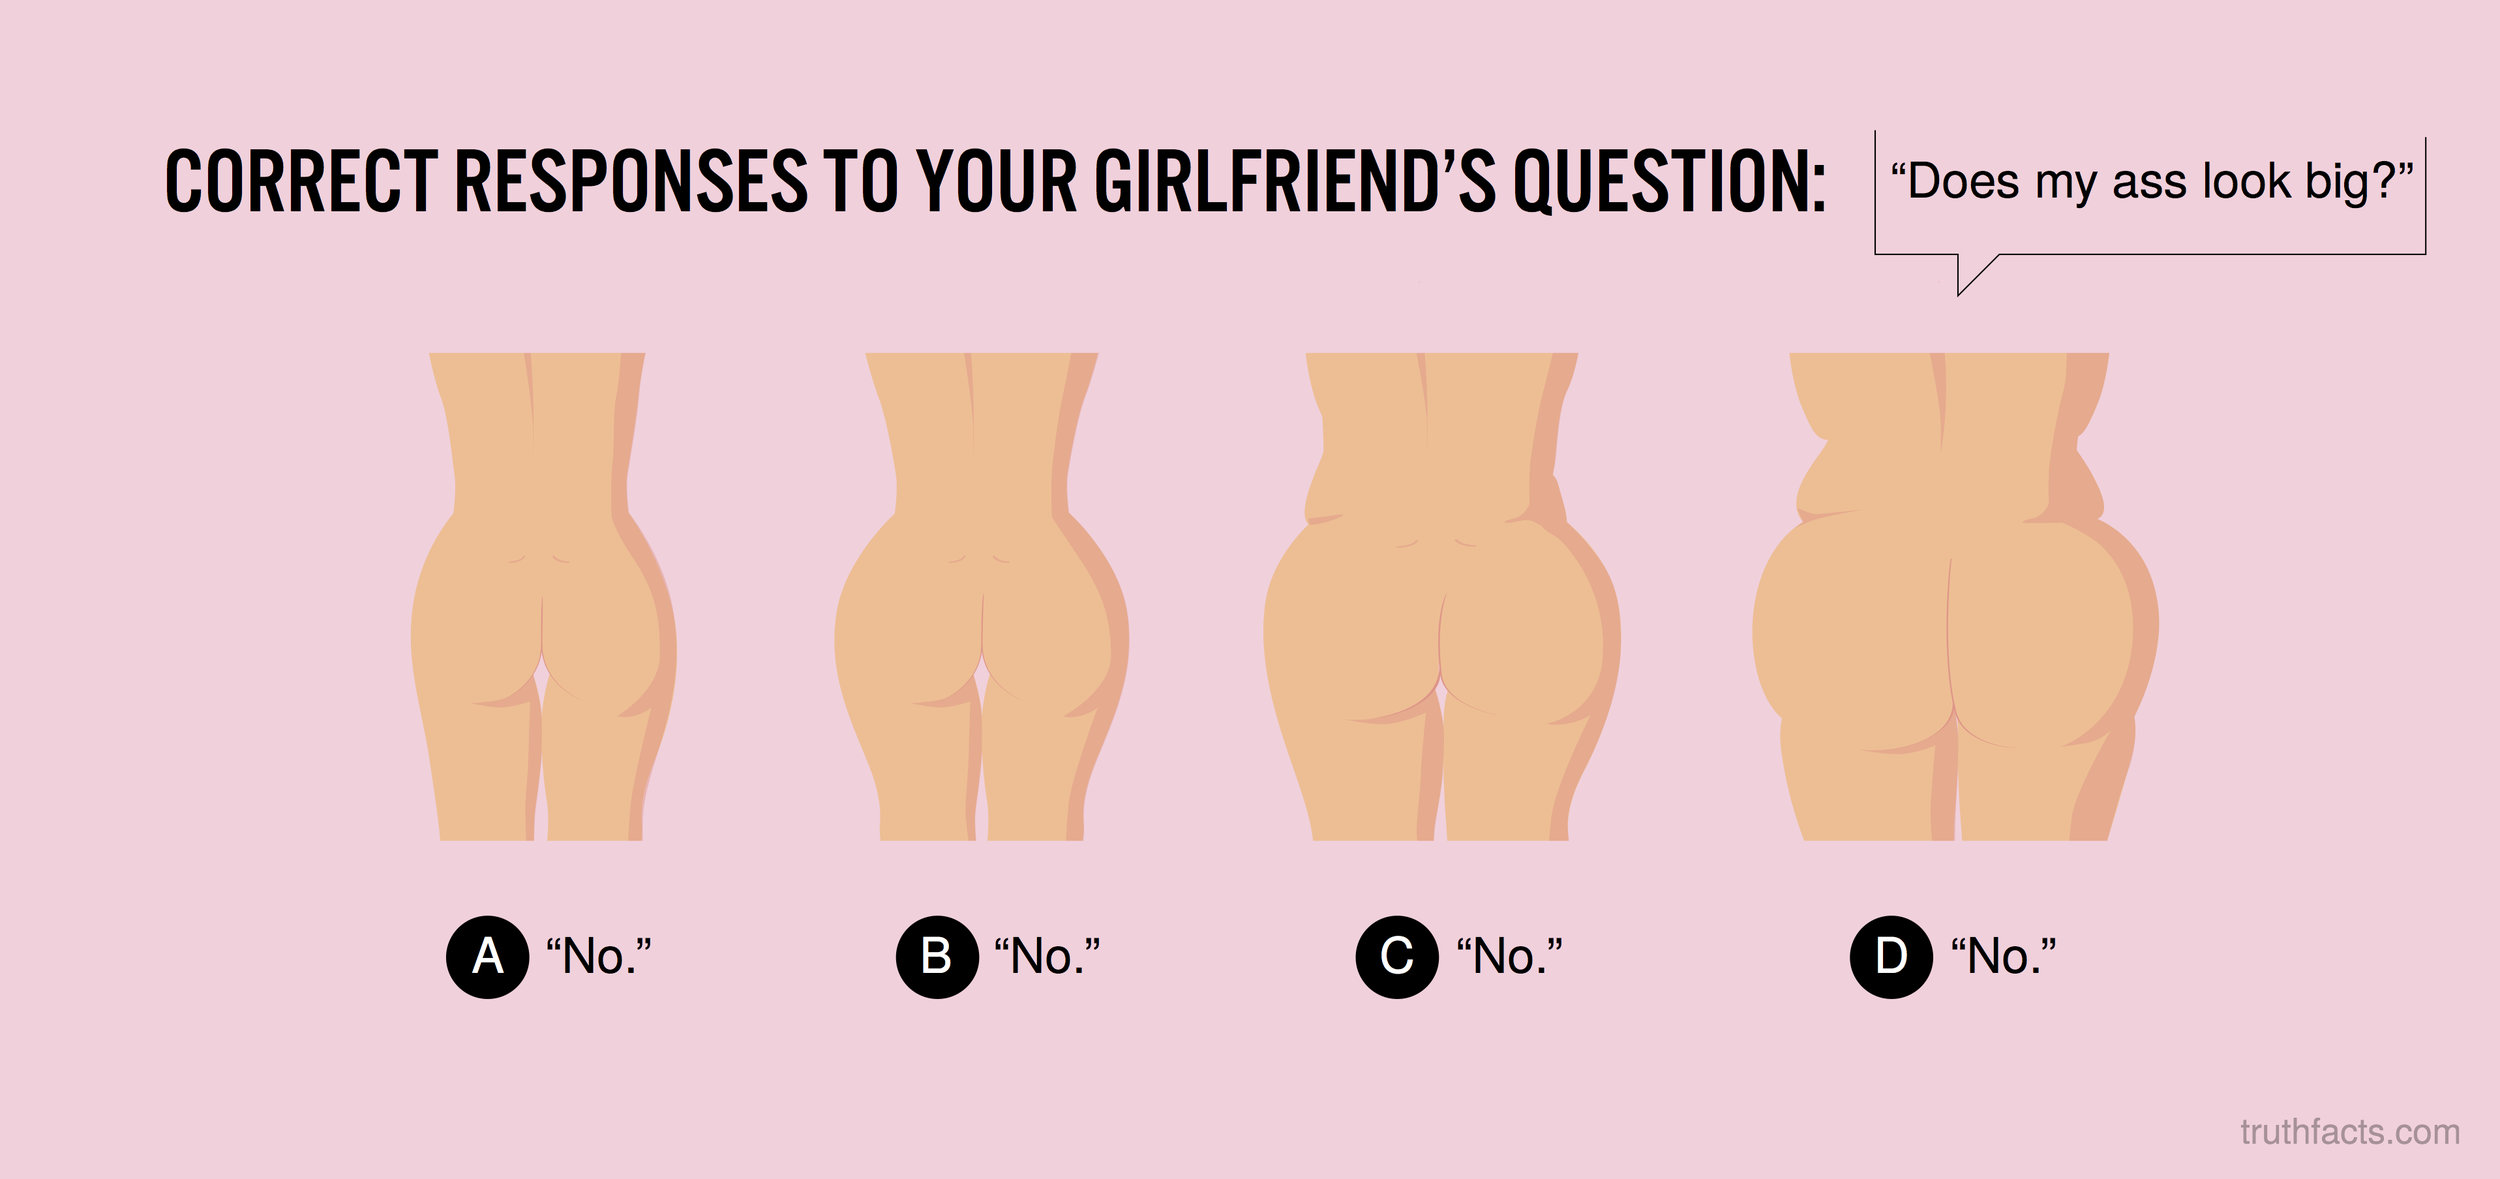 Correct responses to your girlfriend's question